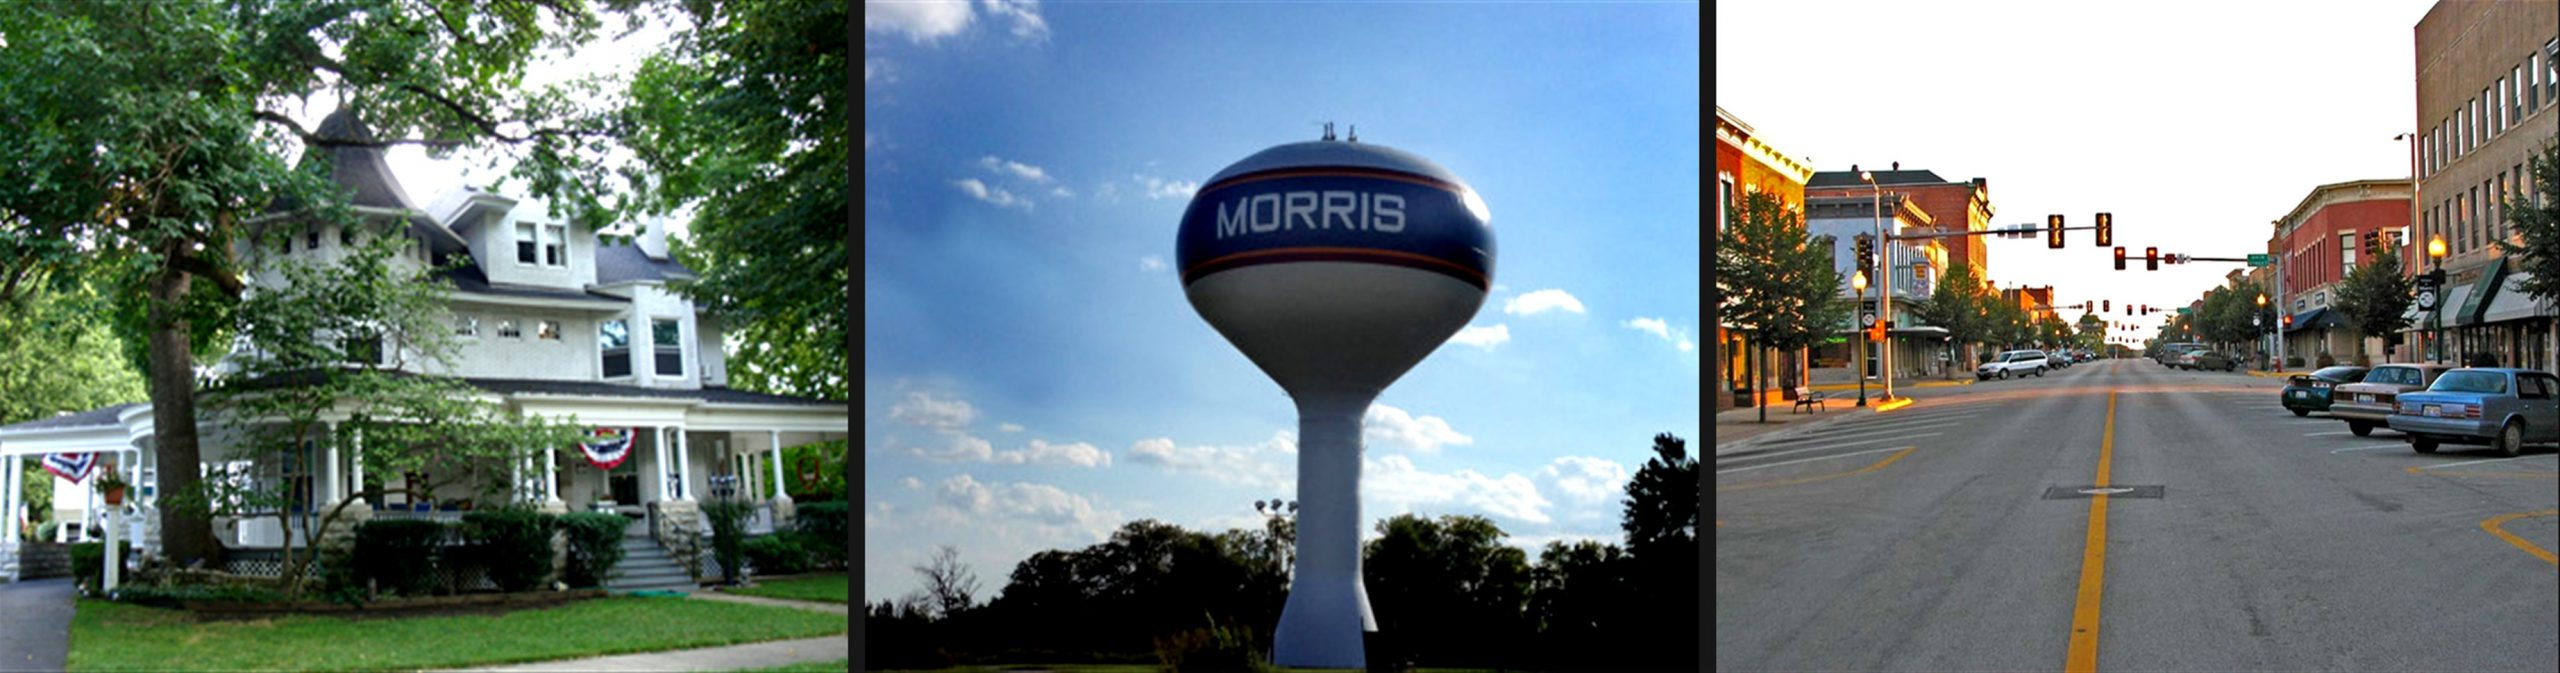 Morris Illinois Attractions: Historic Home, Water Tower, Historic Downtown